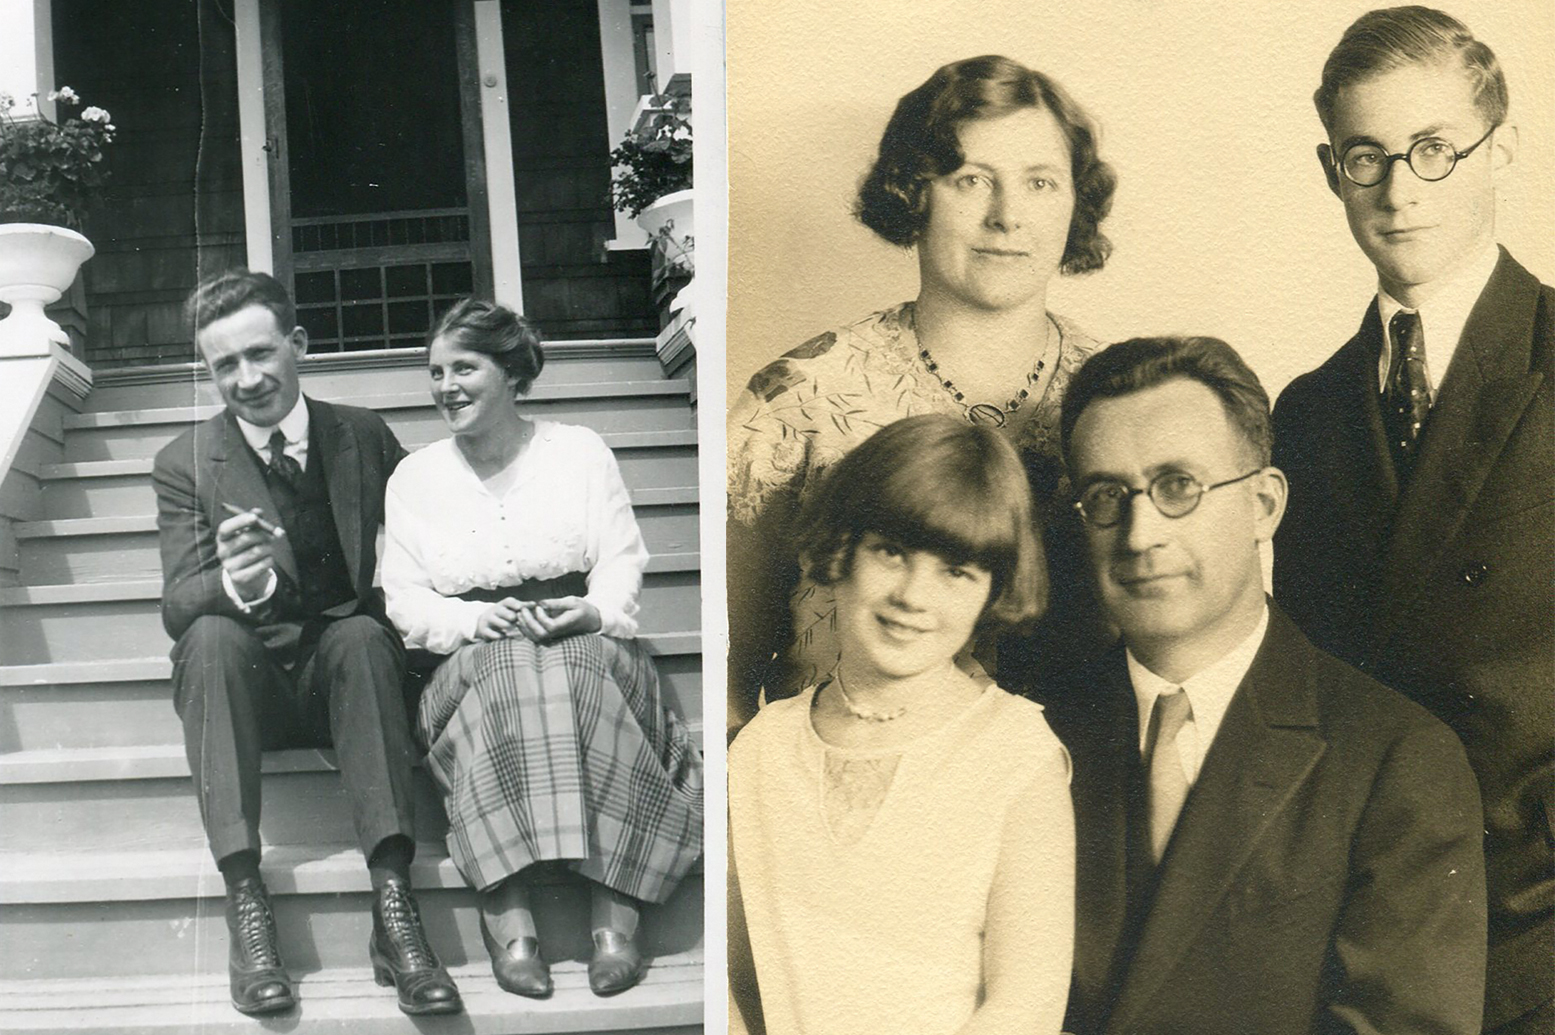 Crosscut columnist Knute Berger's family photos